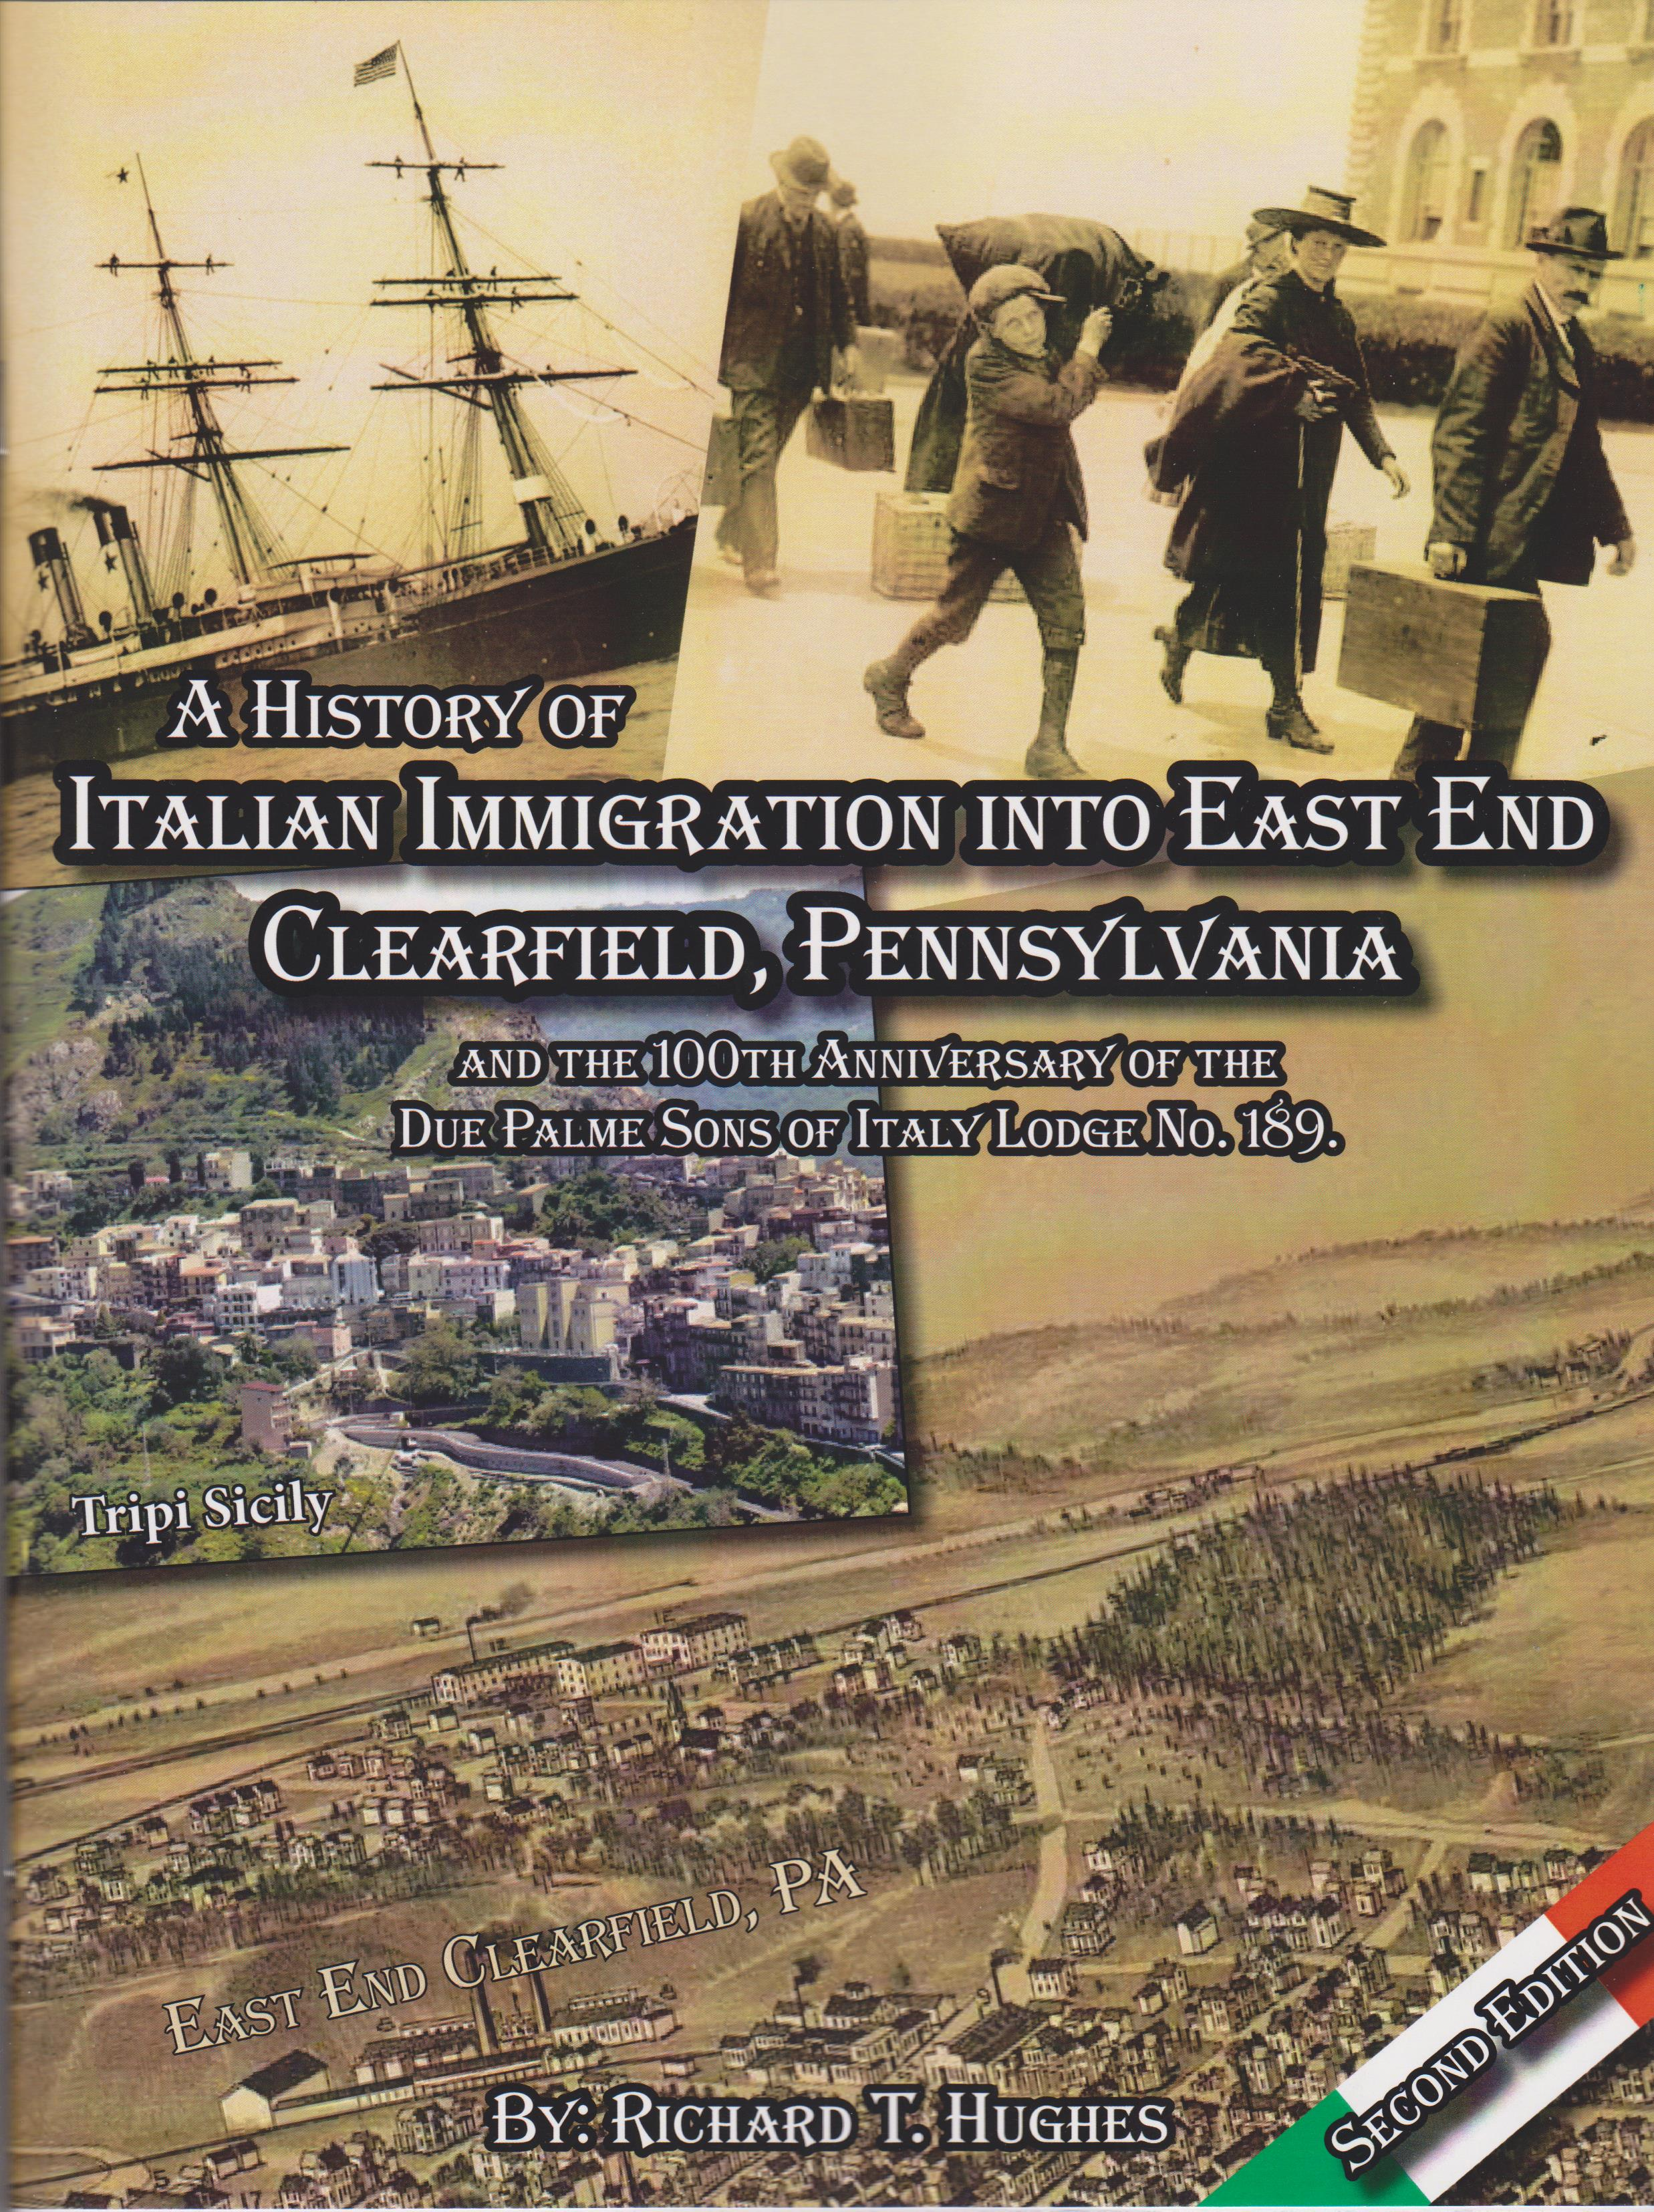 A History of Italian Immigration into East End, Clearfield, PA